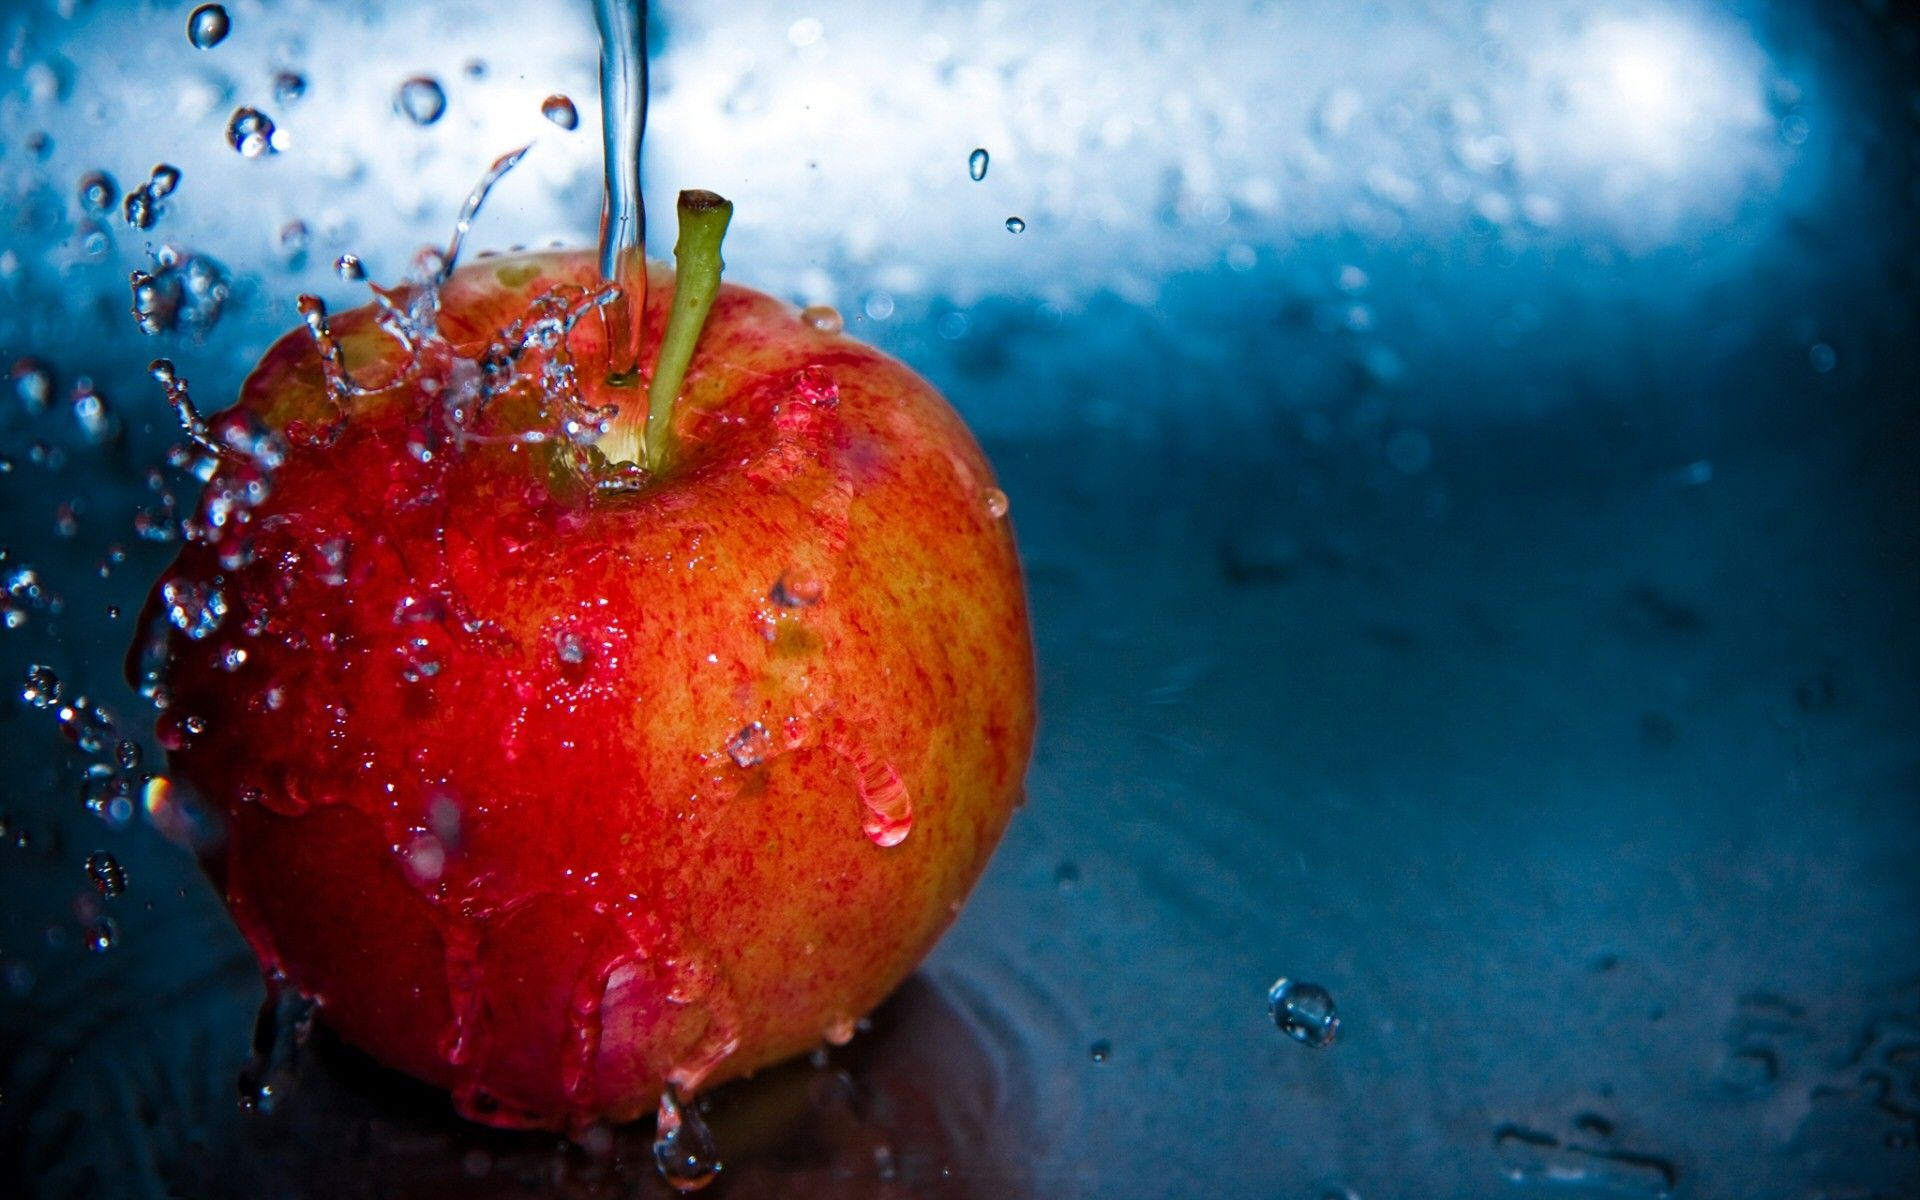 Apple Fruit - Wallpapers-HD Wallpapers-Laptop Wallpapers ...